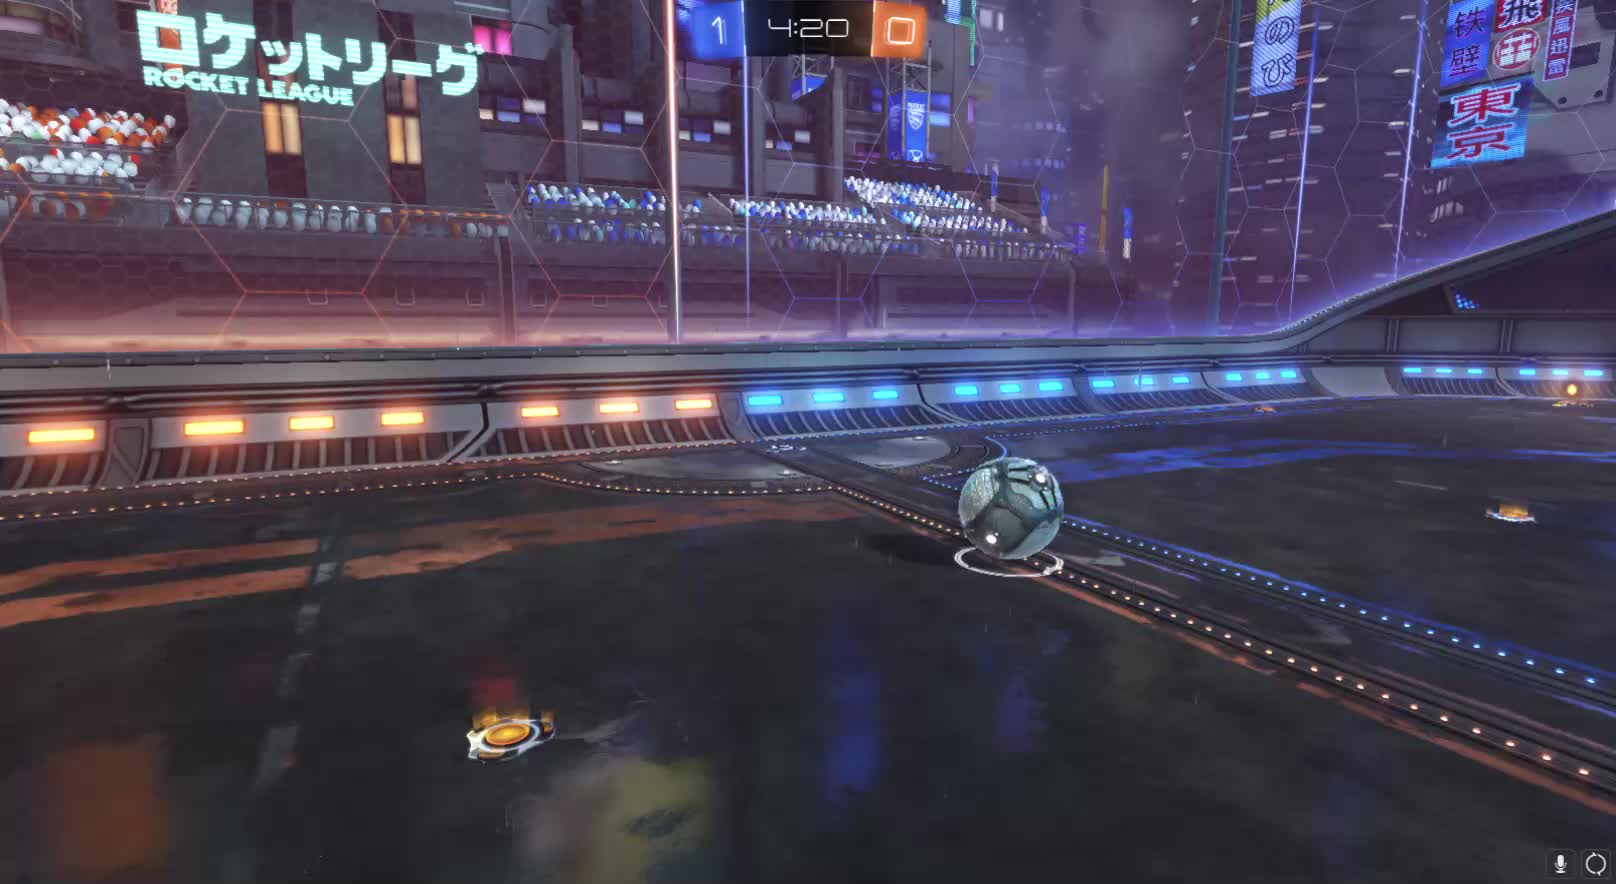 3dprinting, Rocket League (32-bit, DX9) 07_10_17 1_22_30 PM GIFs